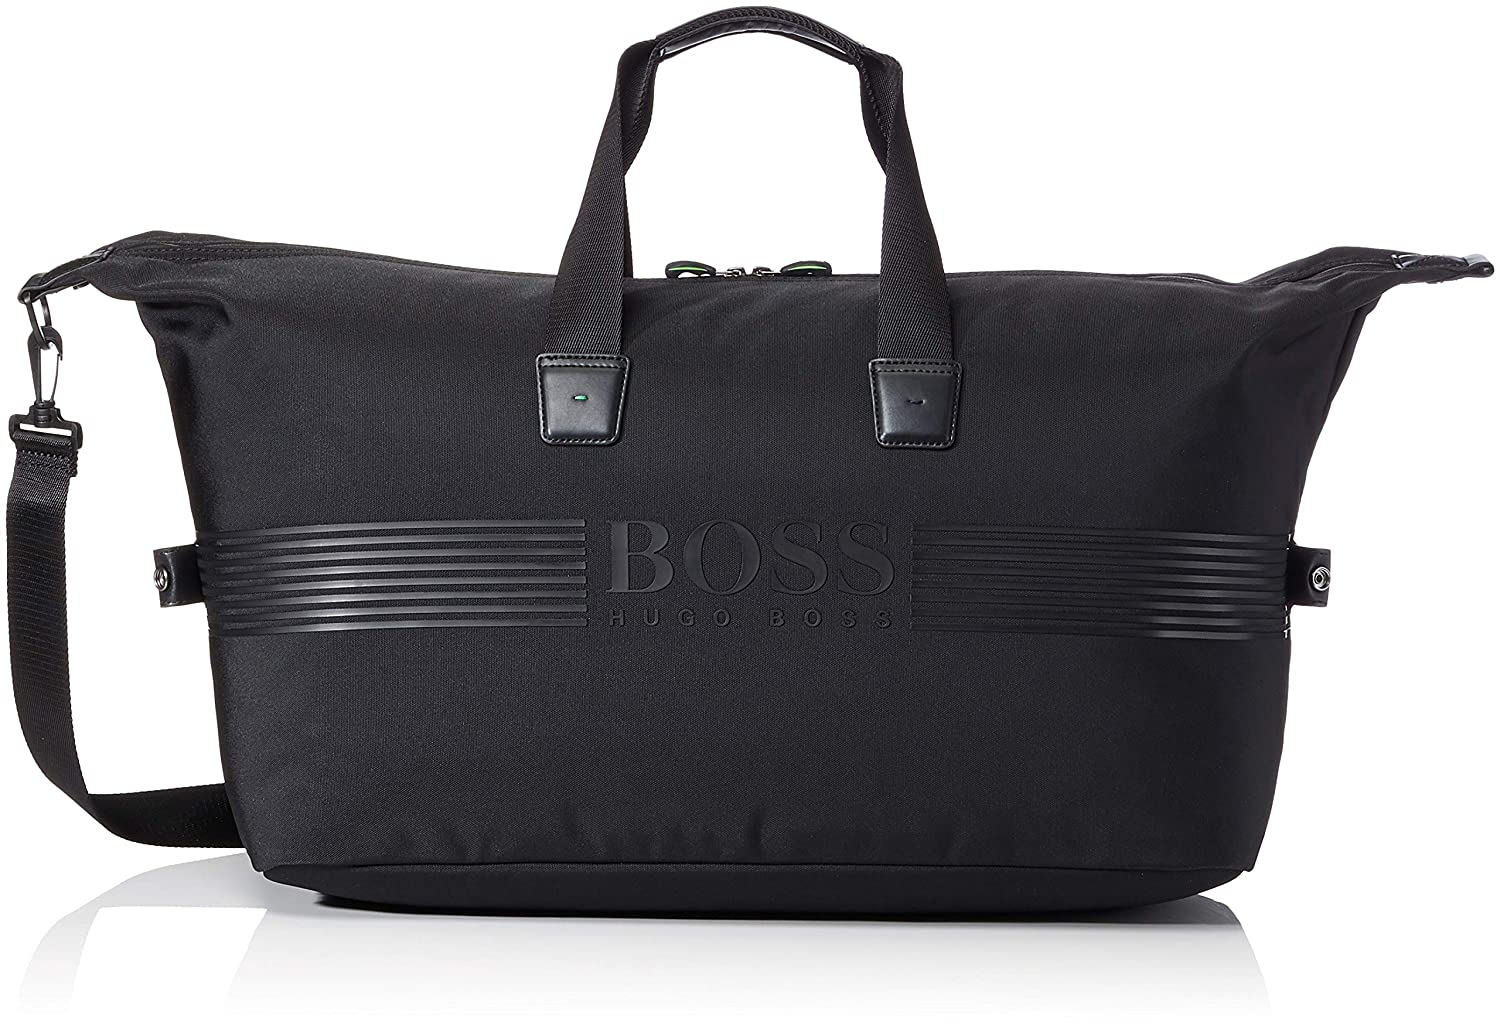 BOSS Athleisure Men's Pixel_holdall Bag BOSS Athleisure Pixel_holdall Men's Bag Black (Black 001) 27x28x52 cm (B x H T)